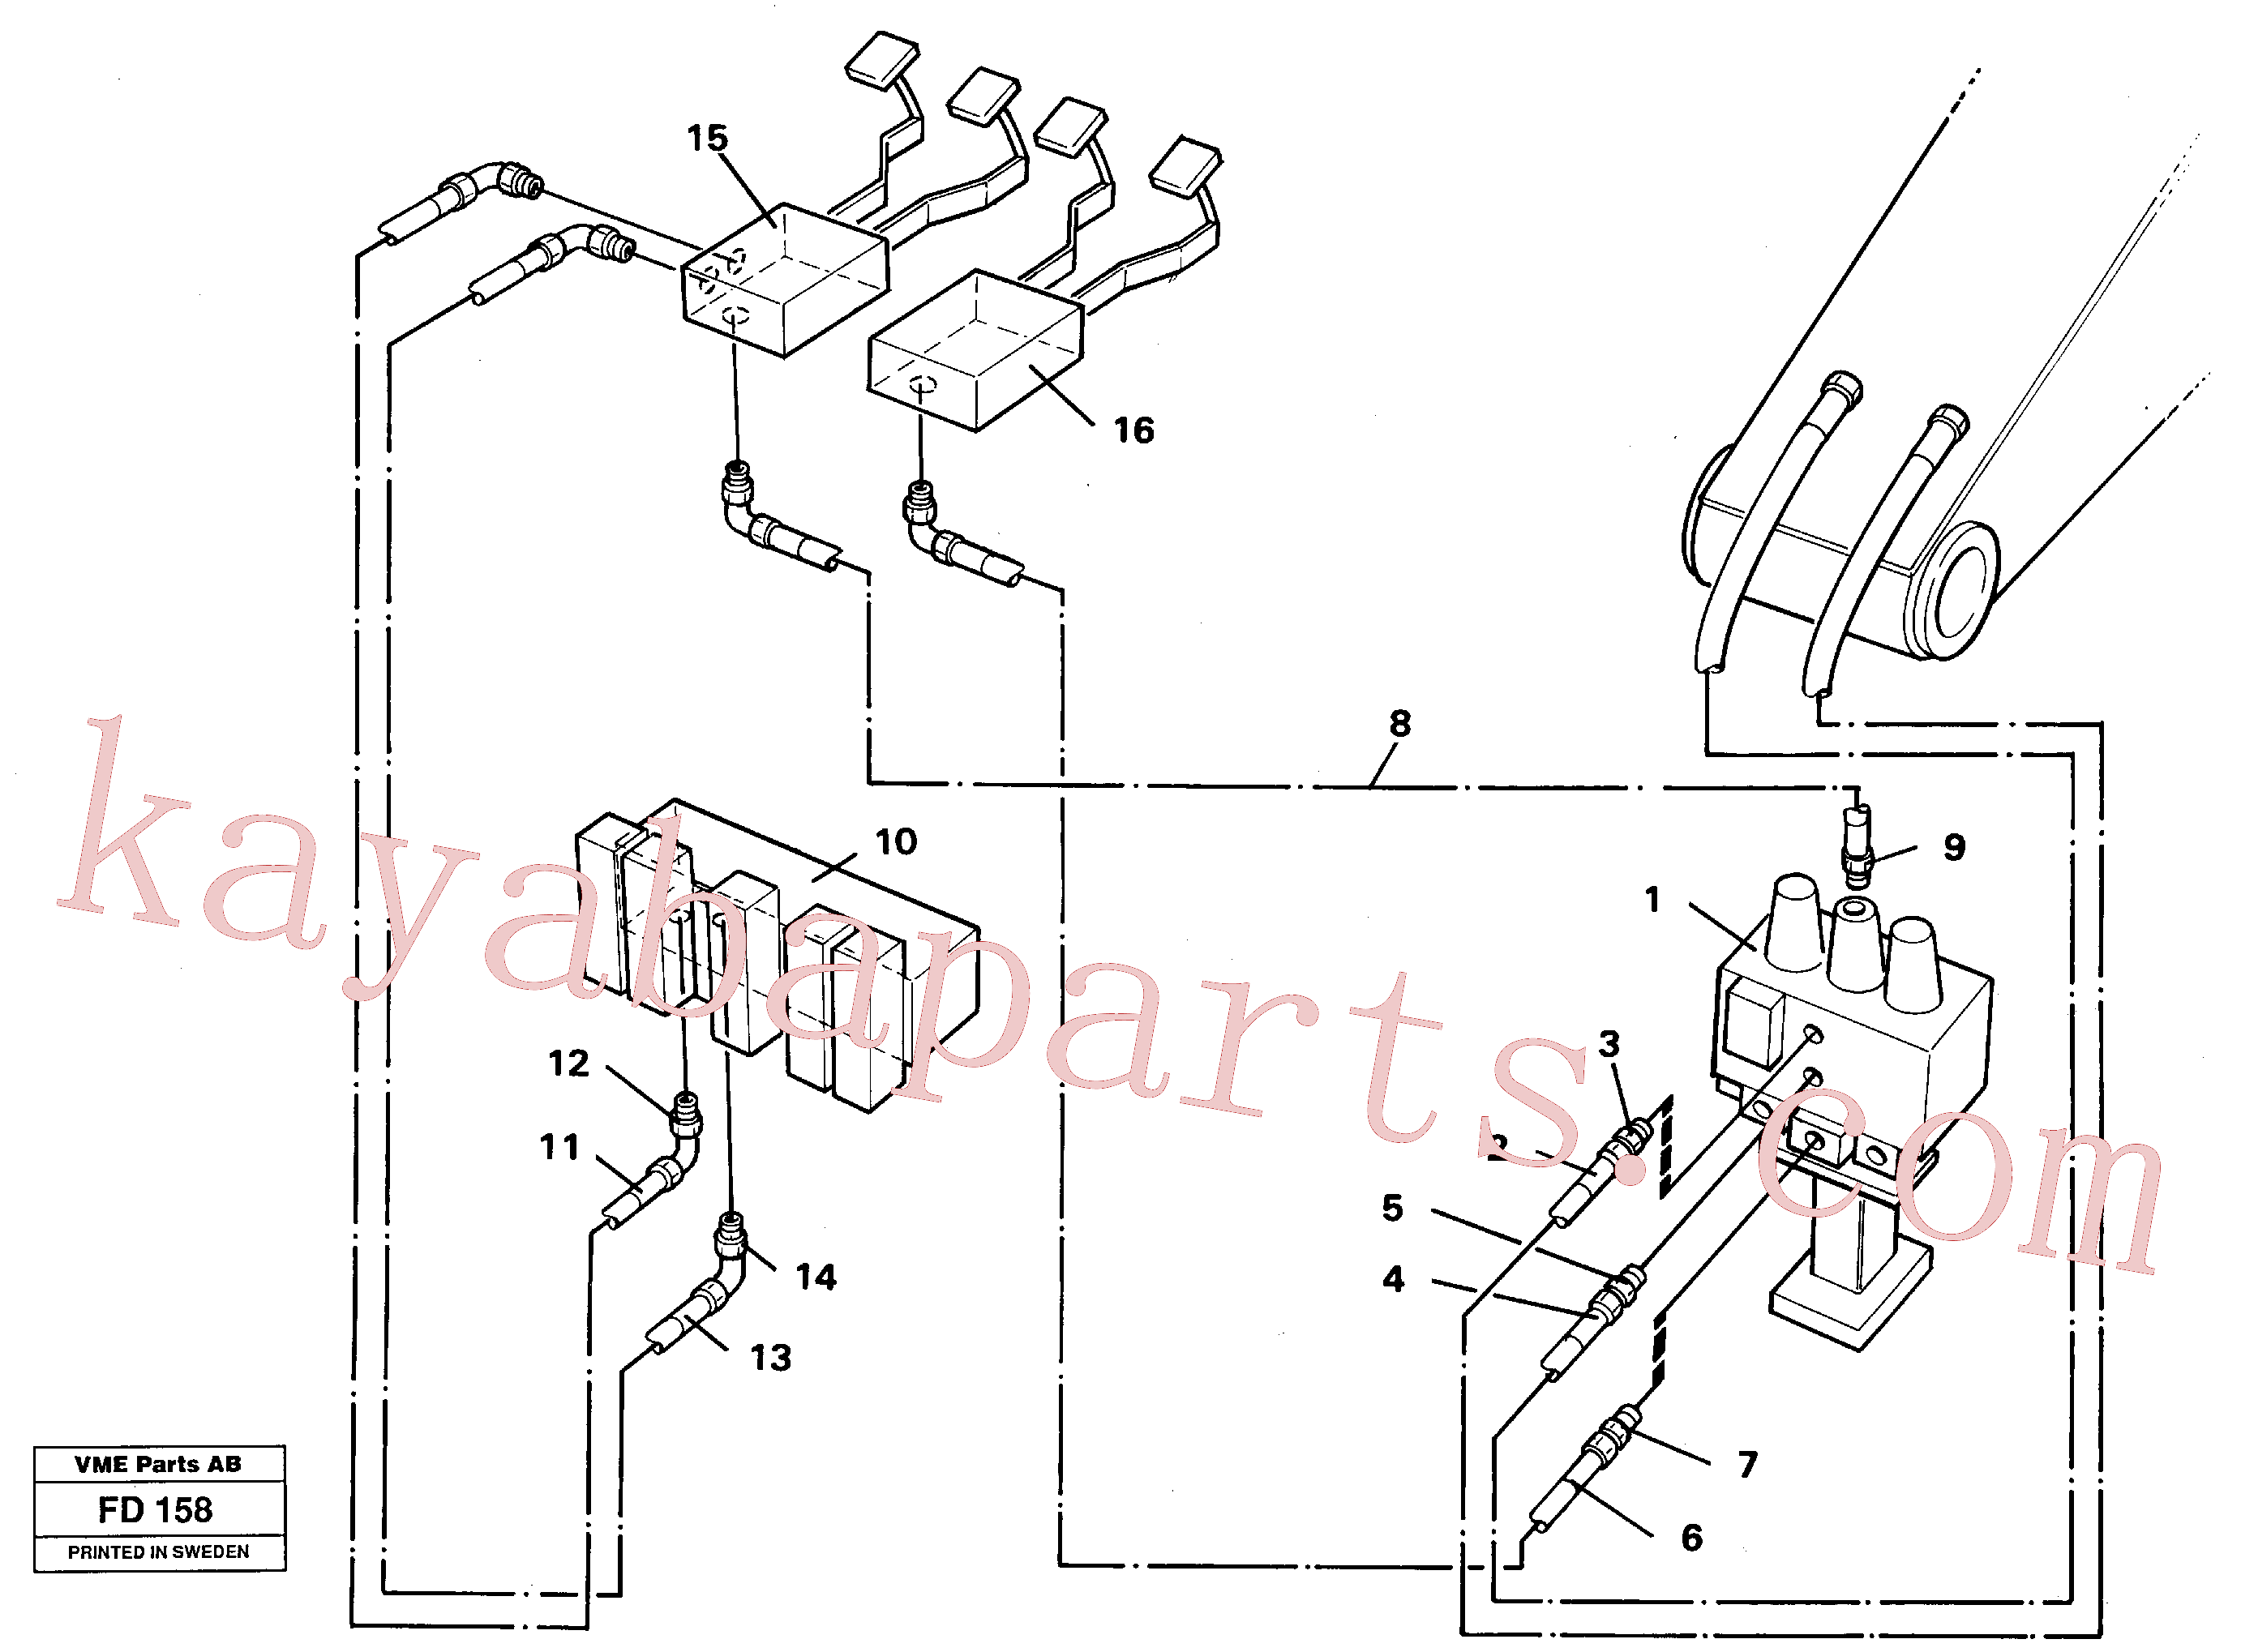 VOE14213151 for Volvo Slope/grab equipment, base machine(FD158 assembly)